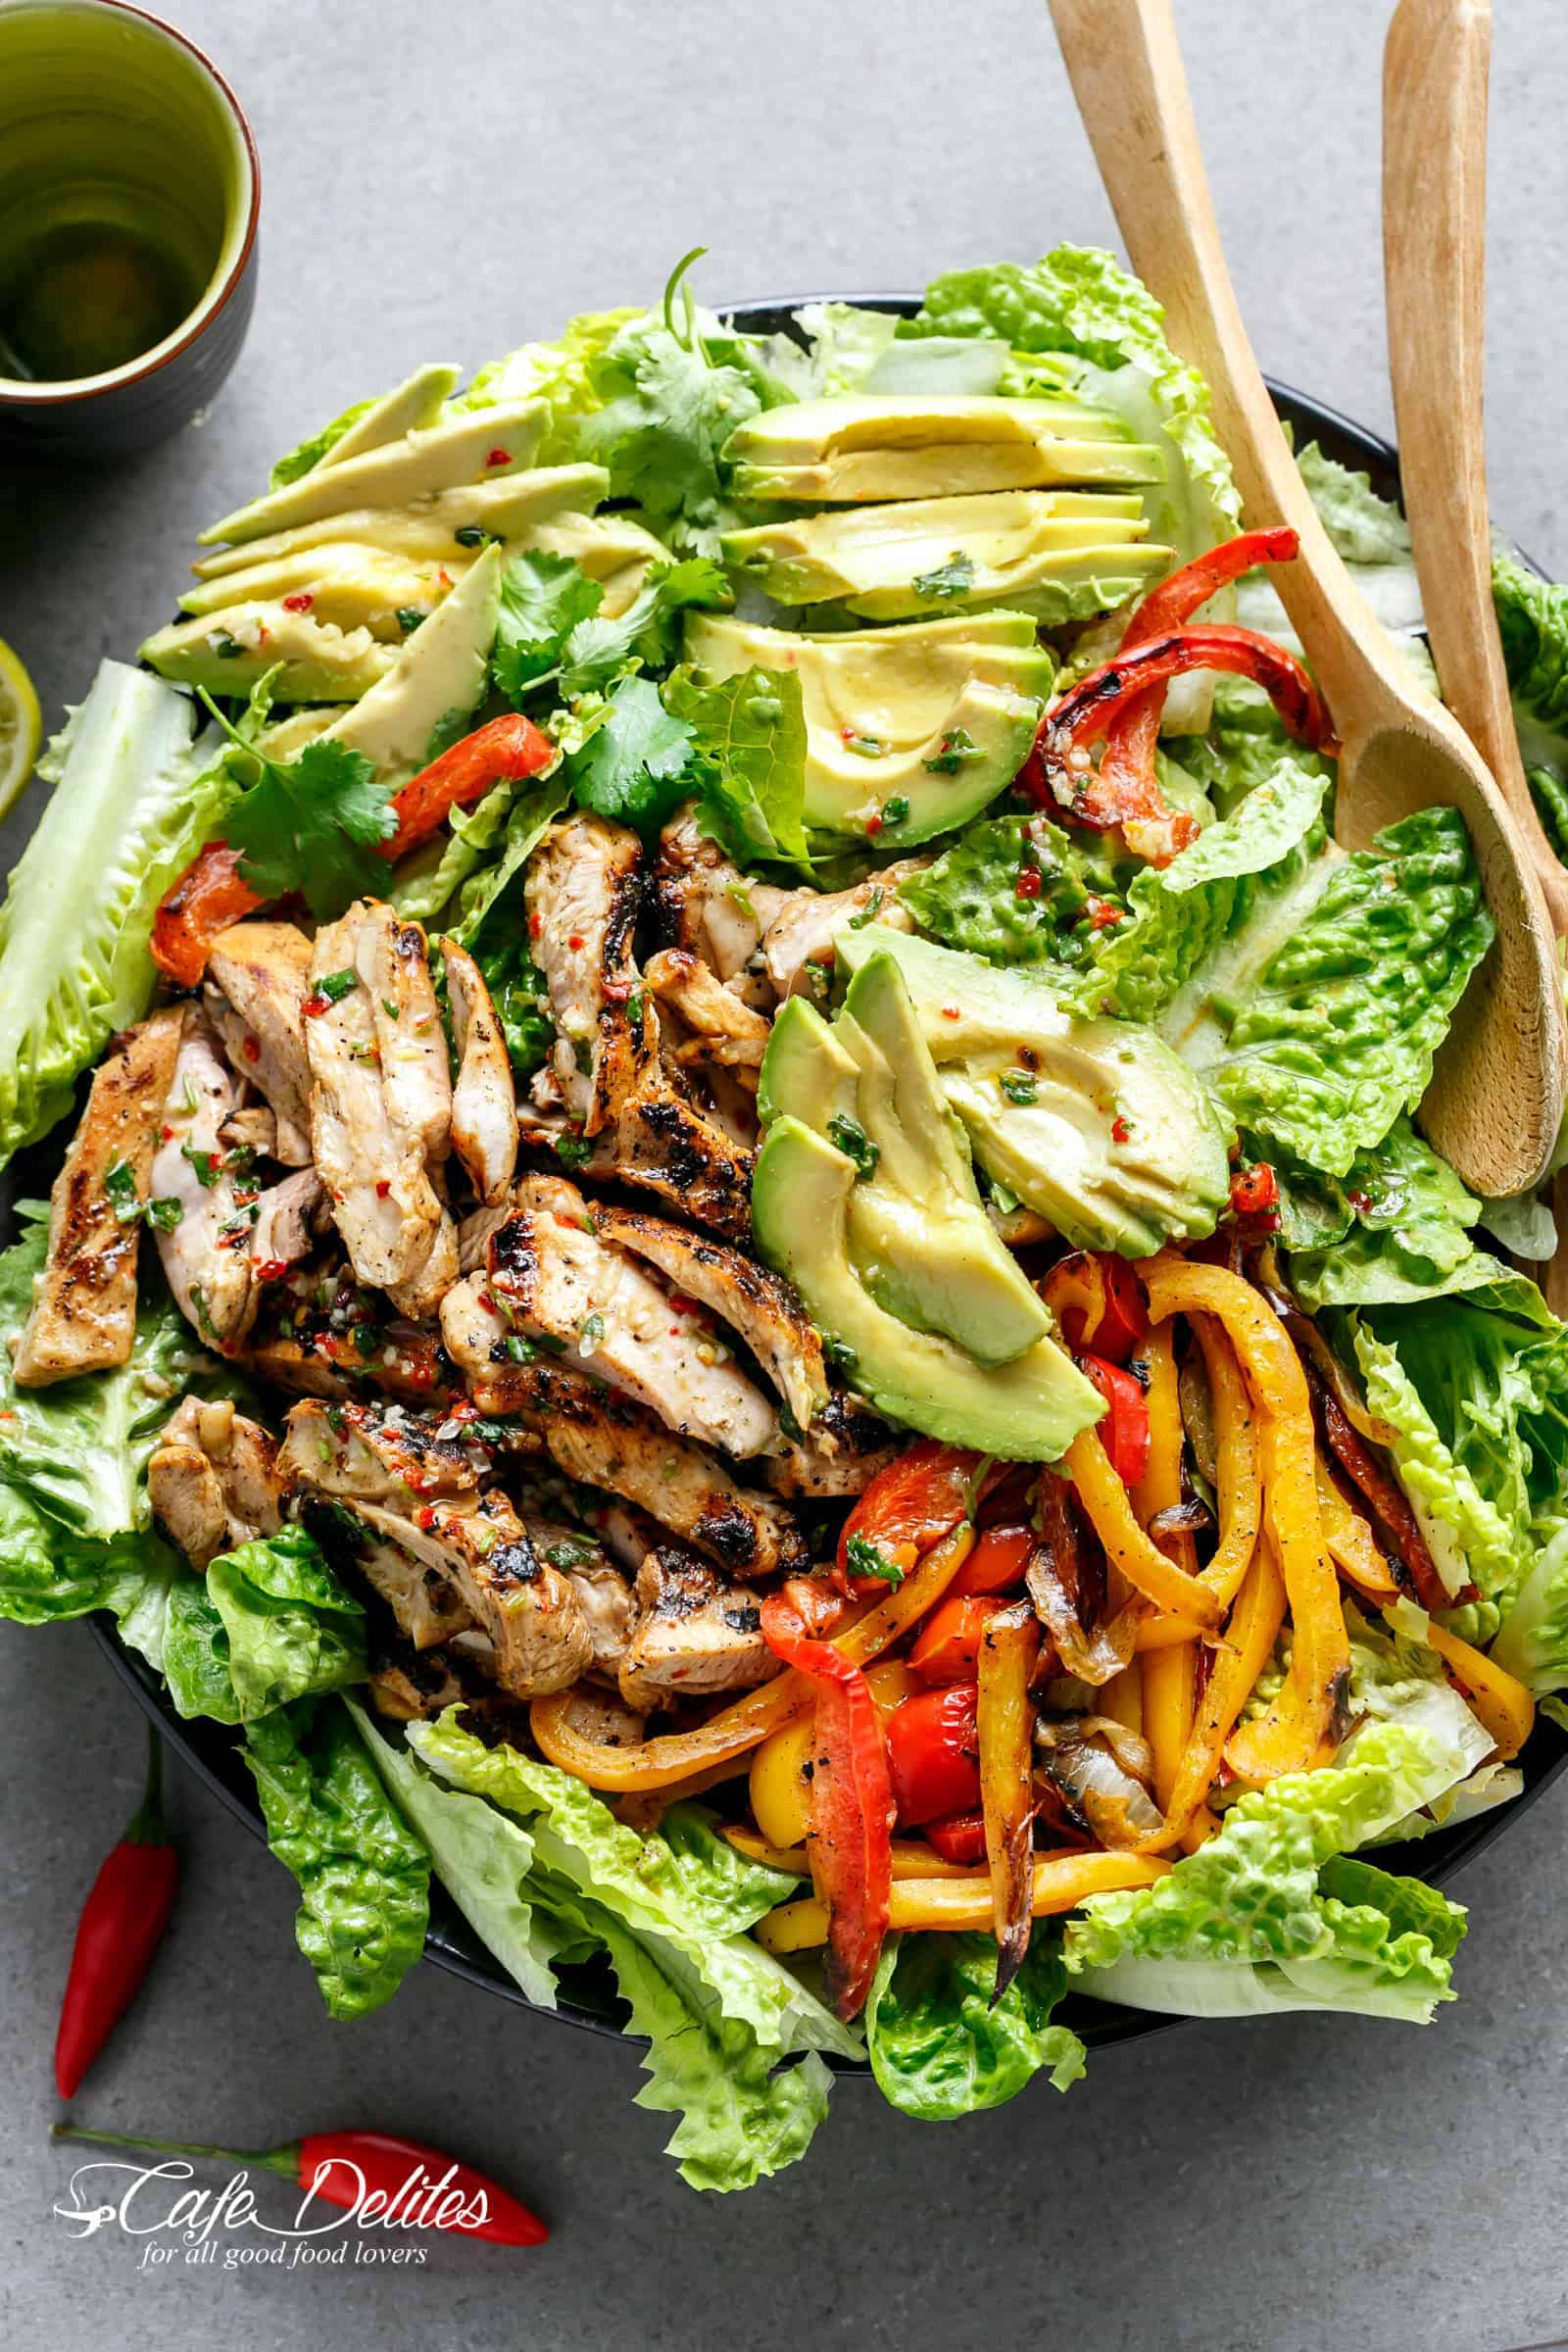 Grilled Chili Lime Chicken Fajita Salad